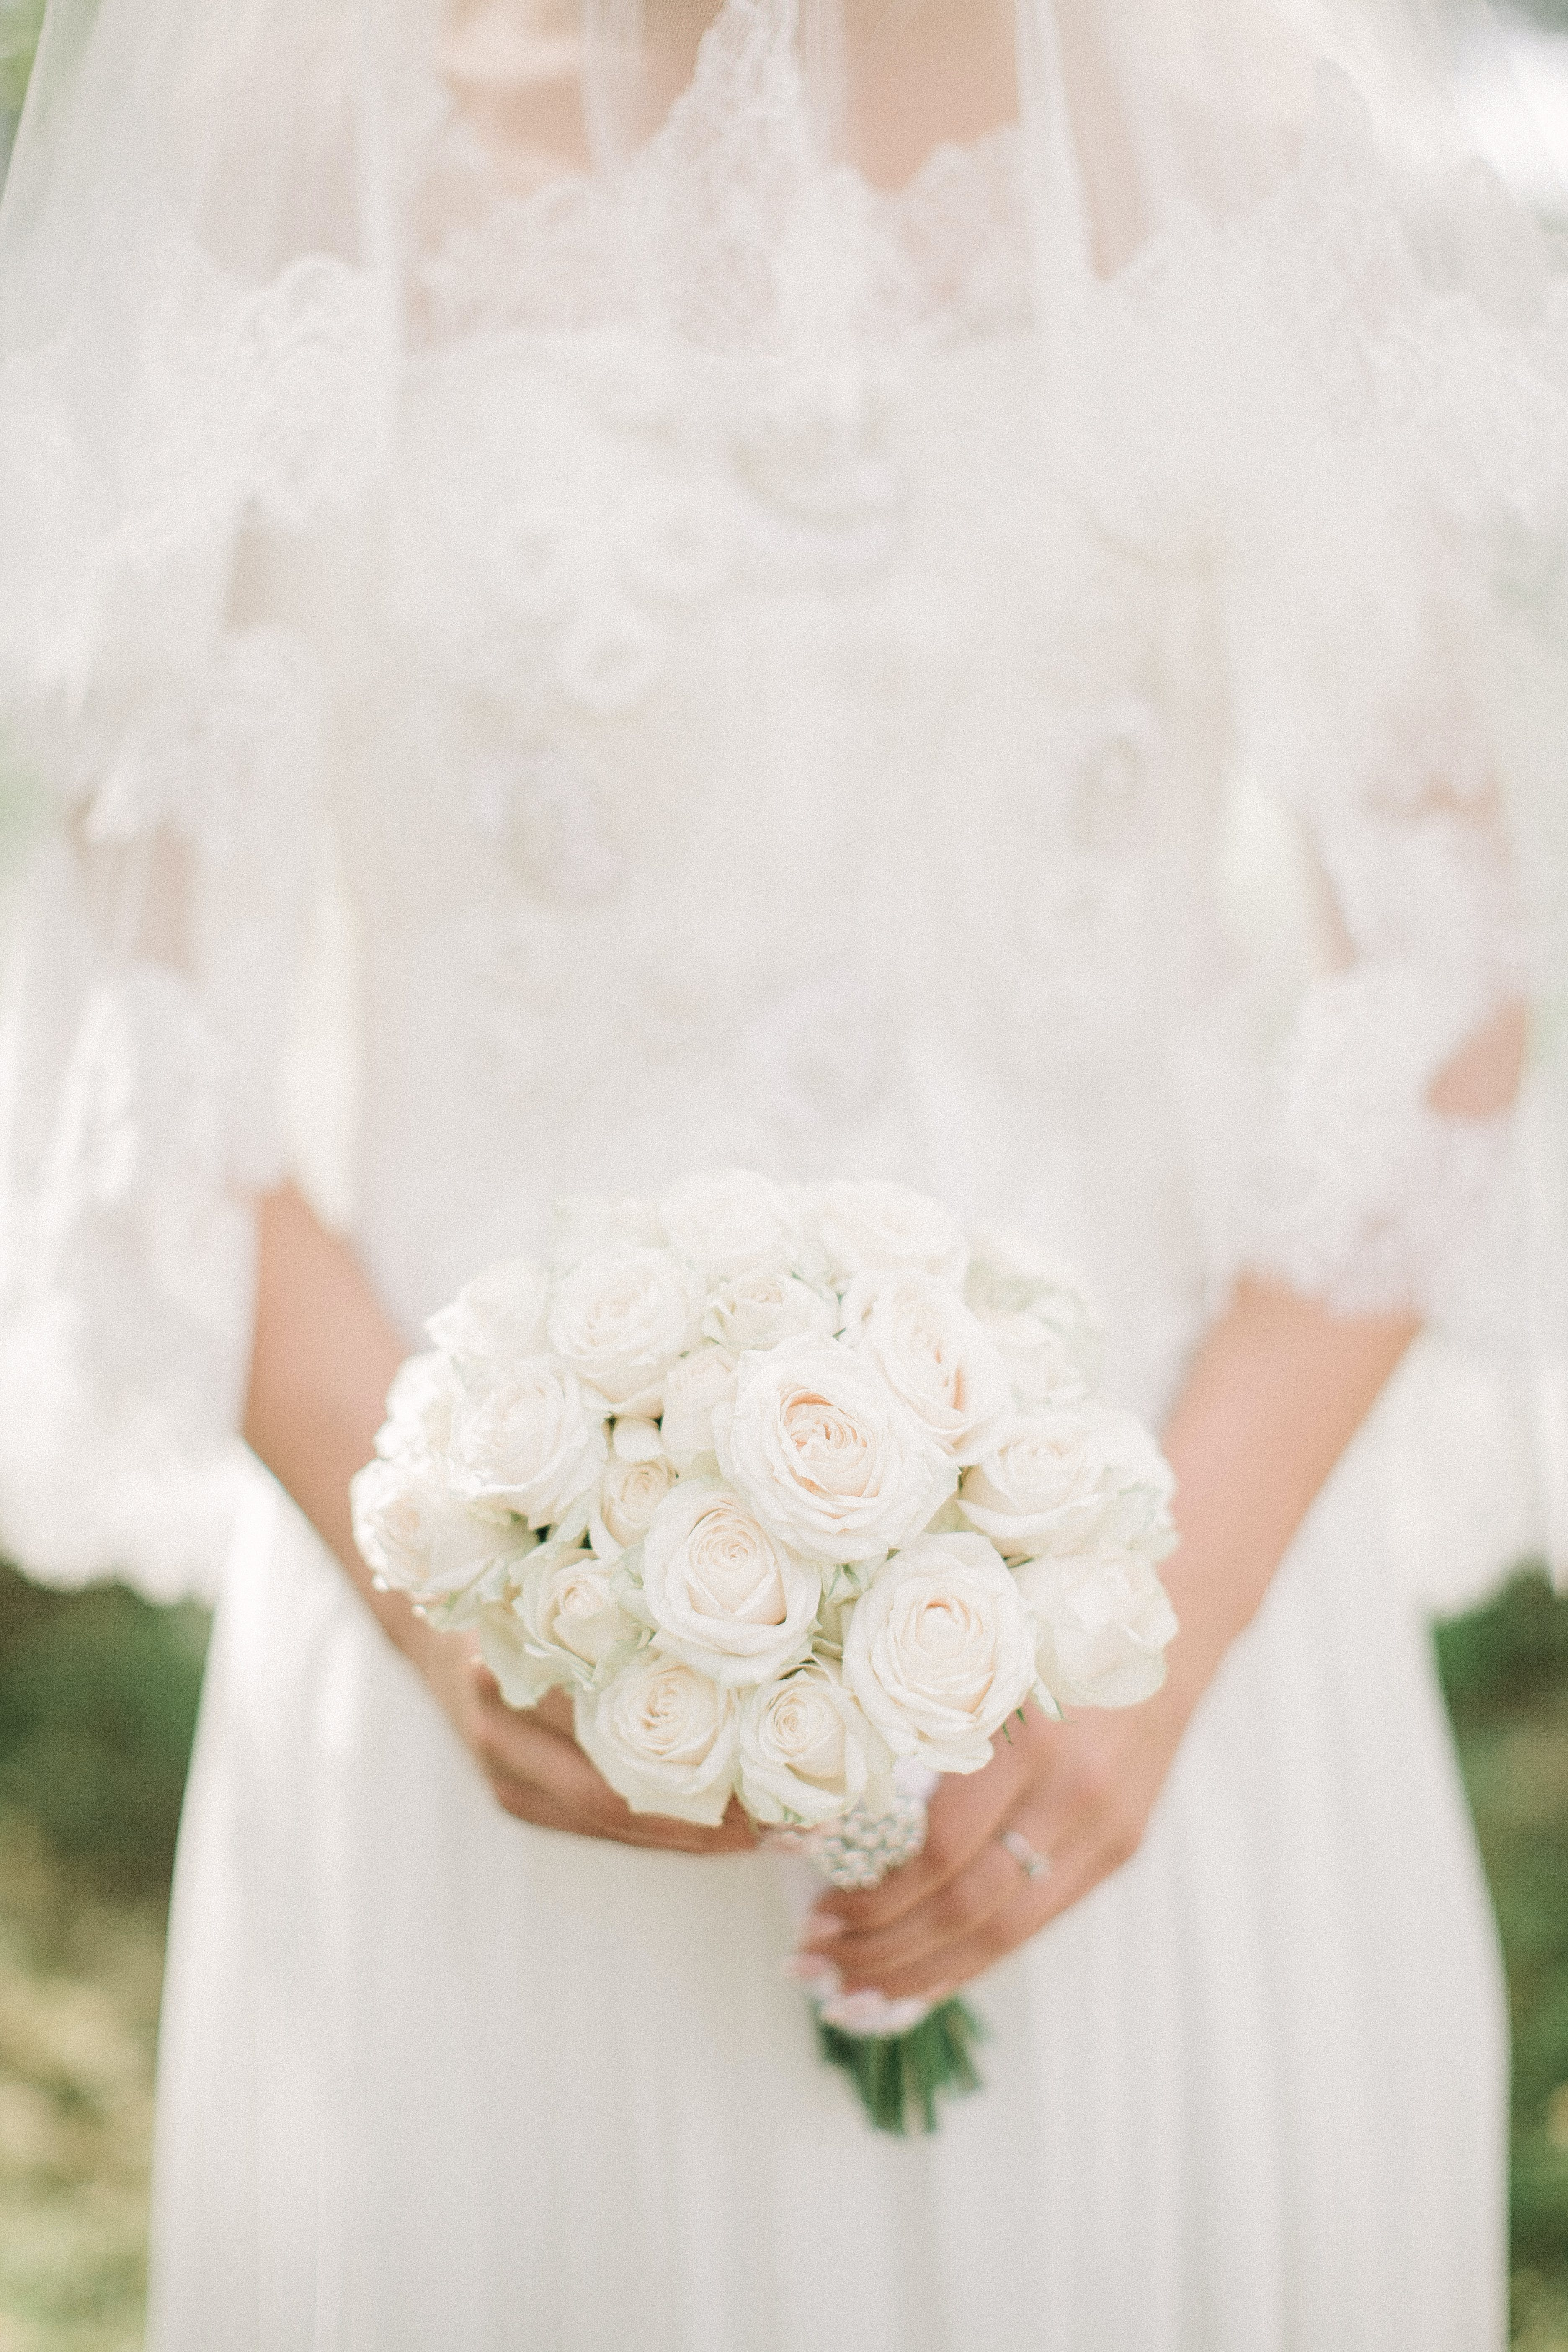 Woman Wearing White Wedding Gown While Holding Bouquet